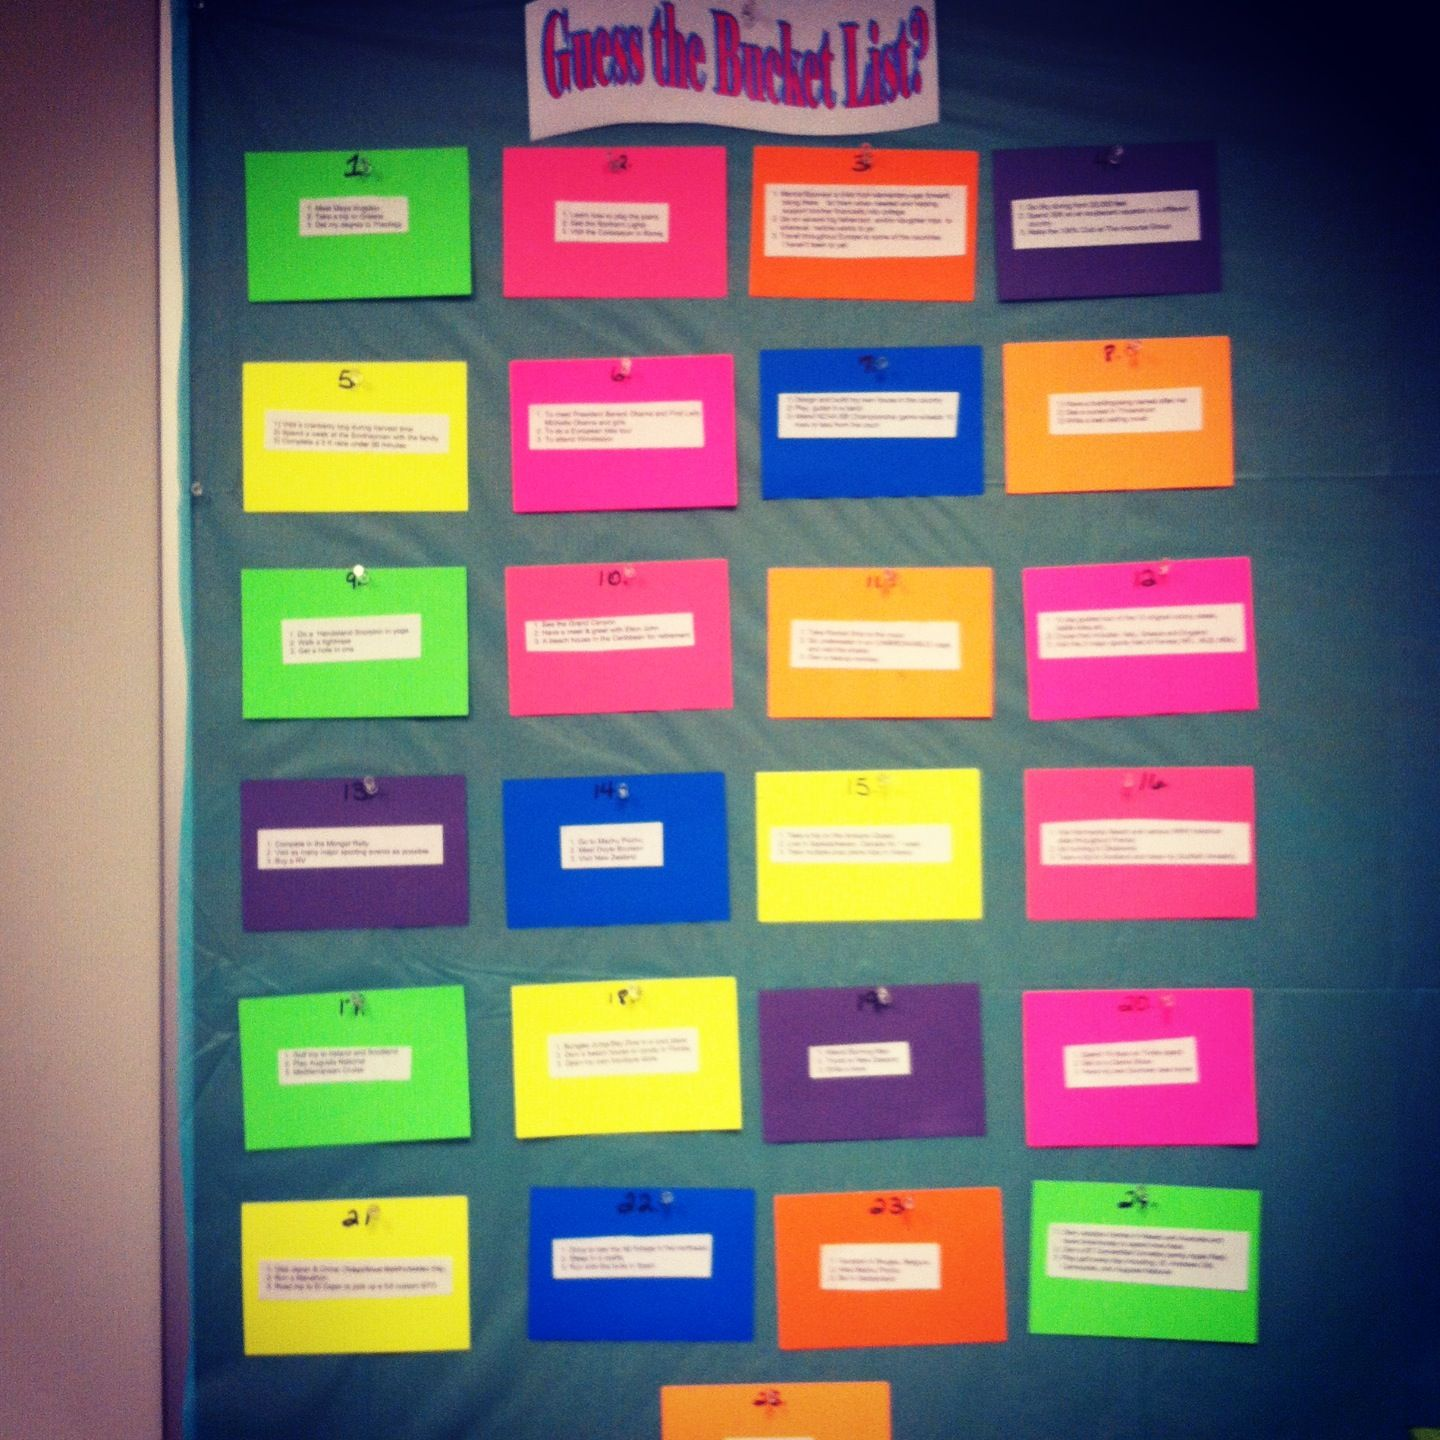 Game for coworkers - How Well Do You Know Your Coworkers Guess The Bucket List Employee Contest